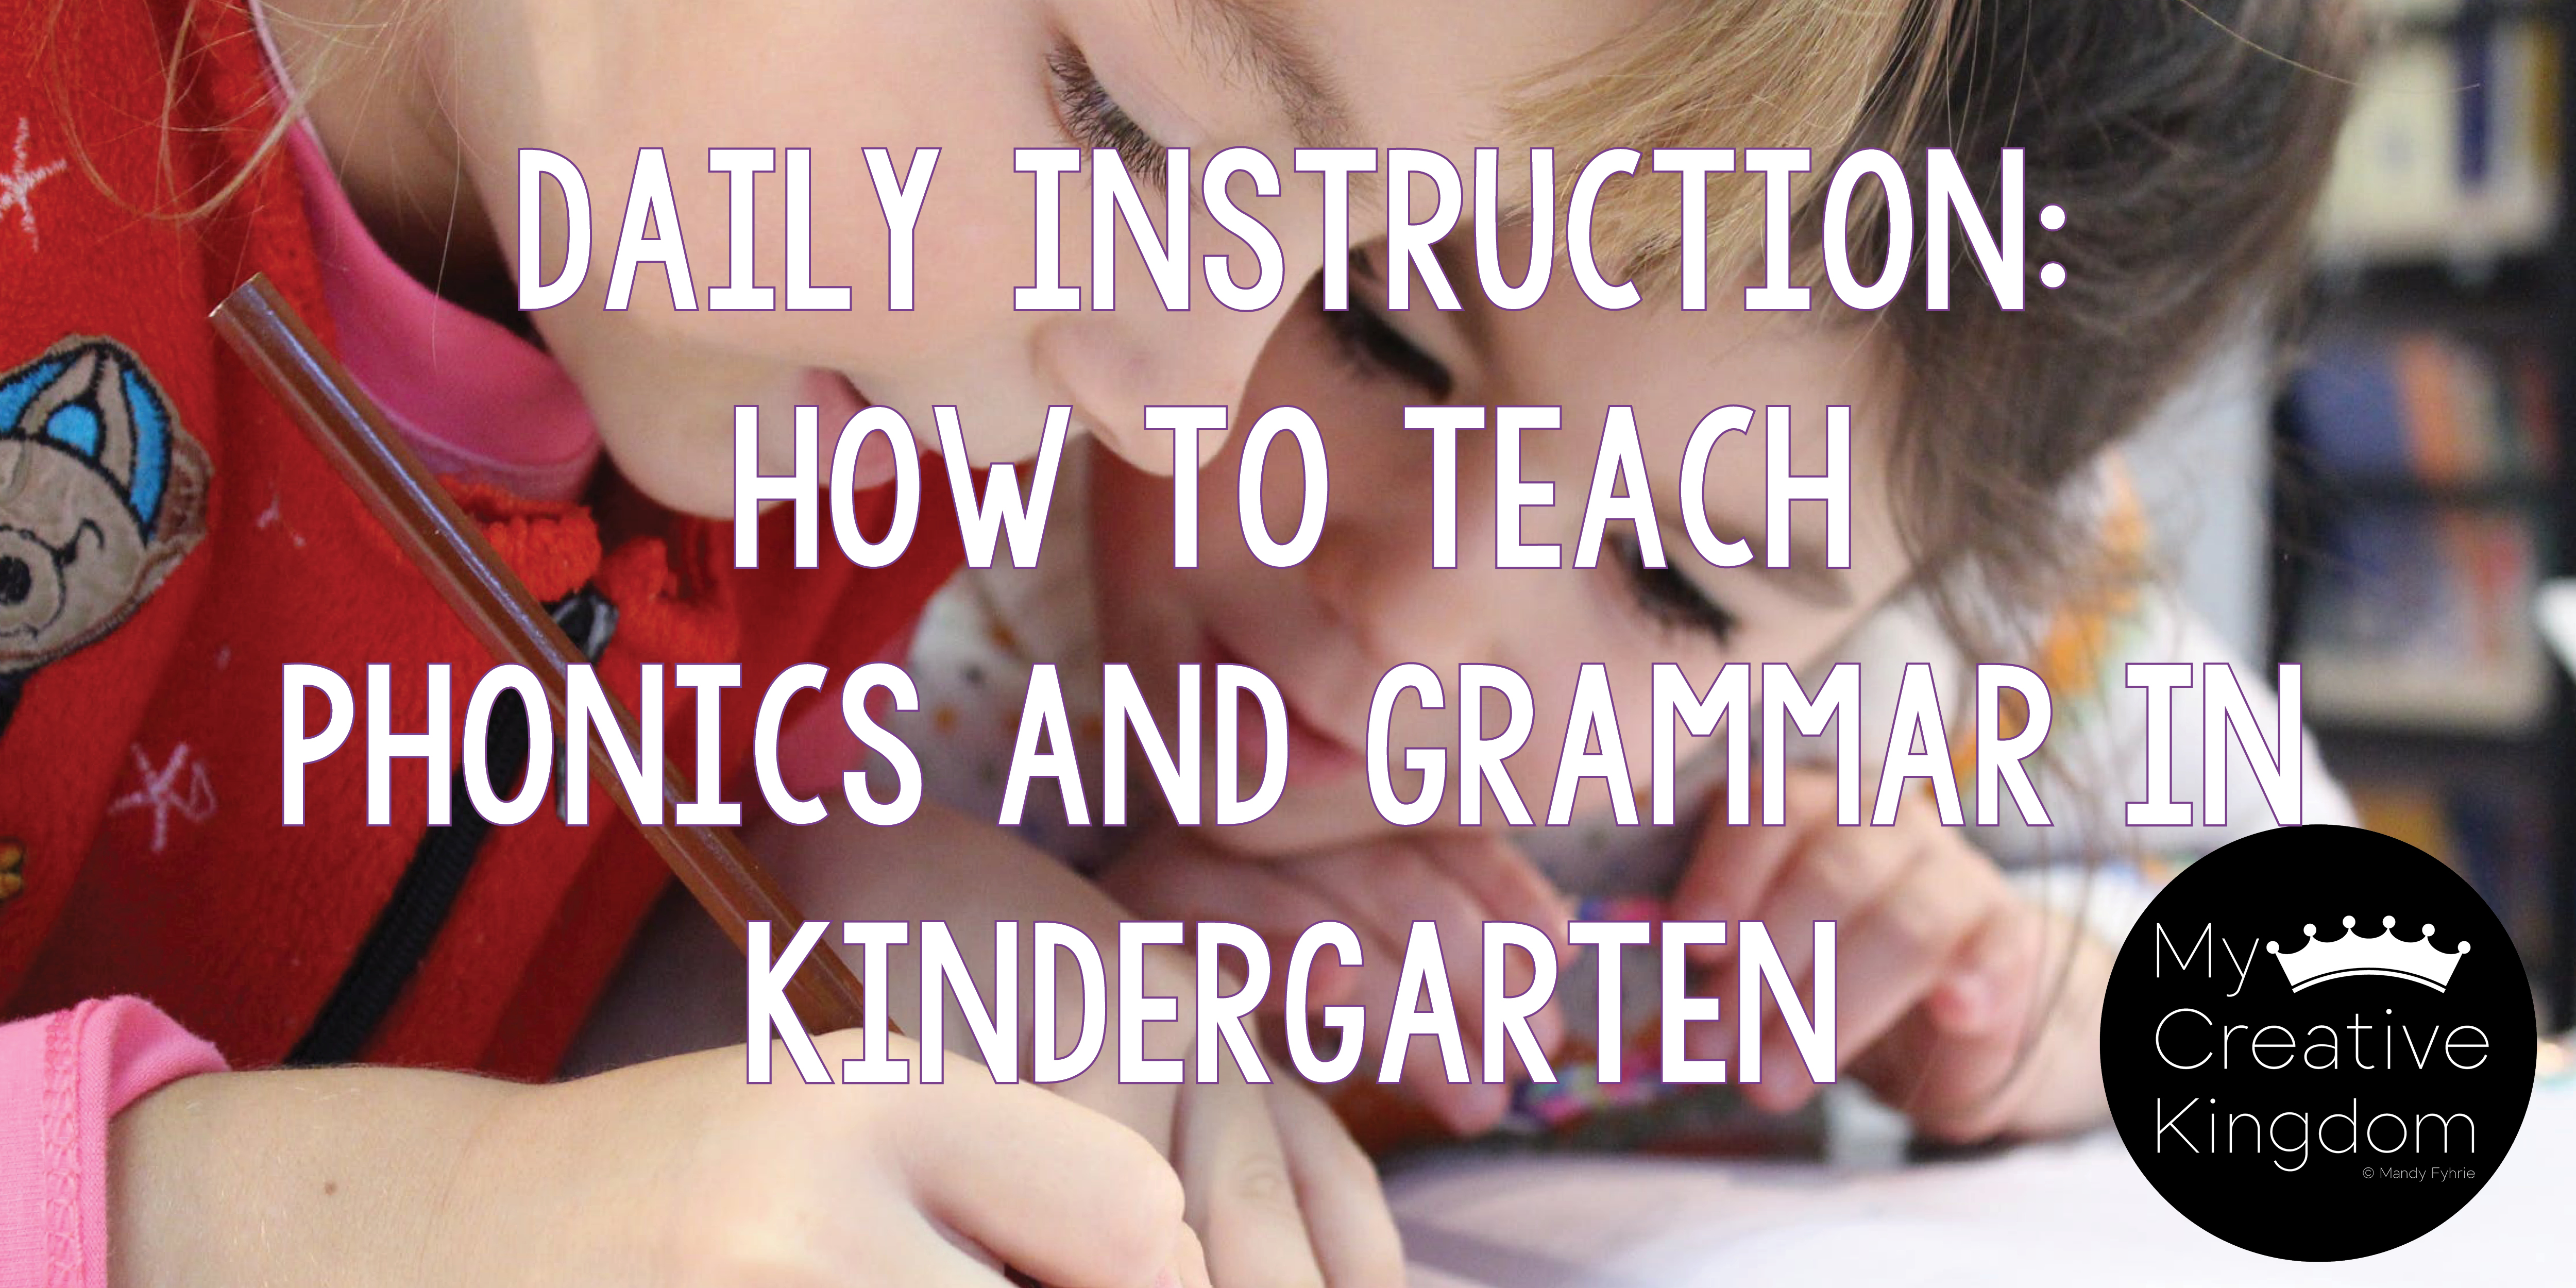 Daily Instruction: How to Teach Phonics and Grammar in Kindergarten